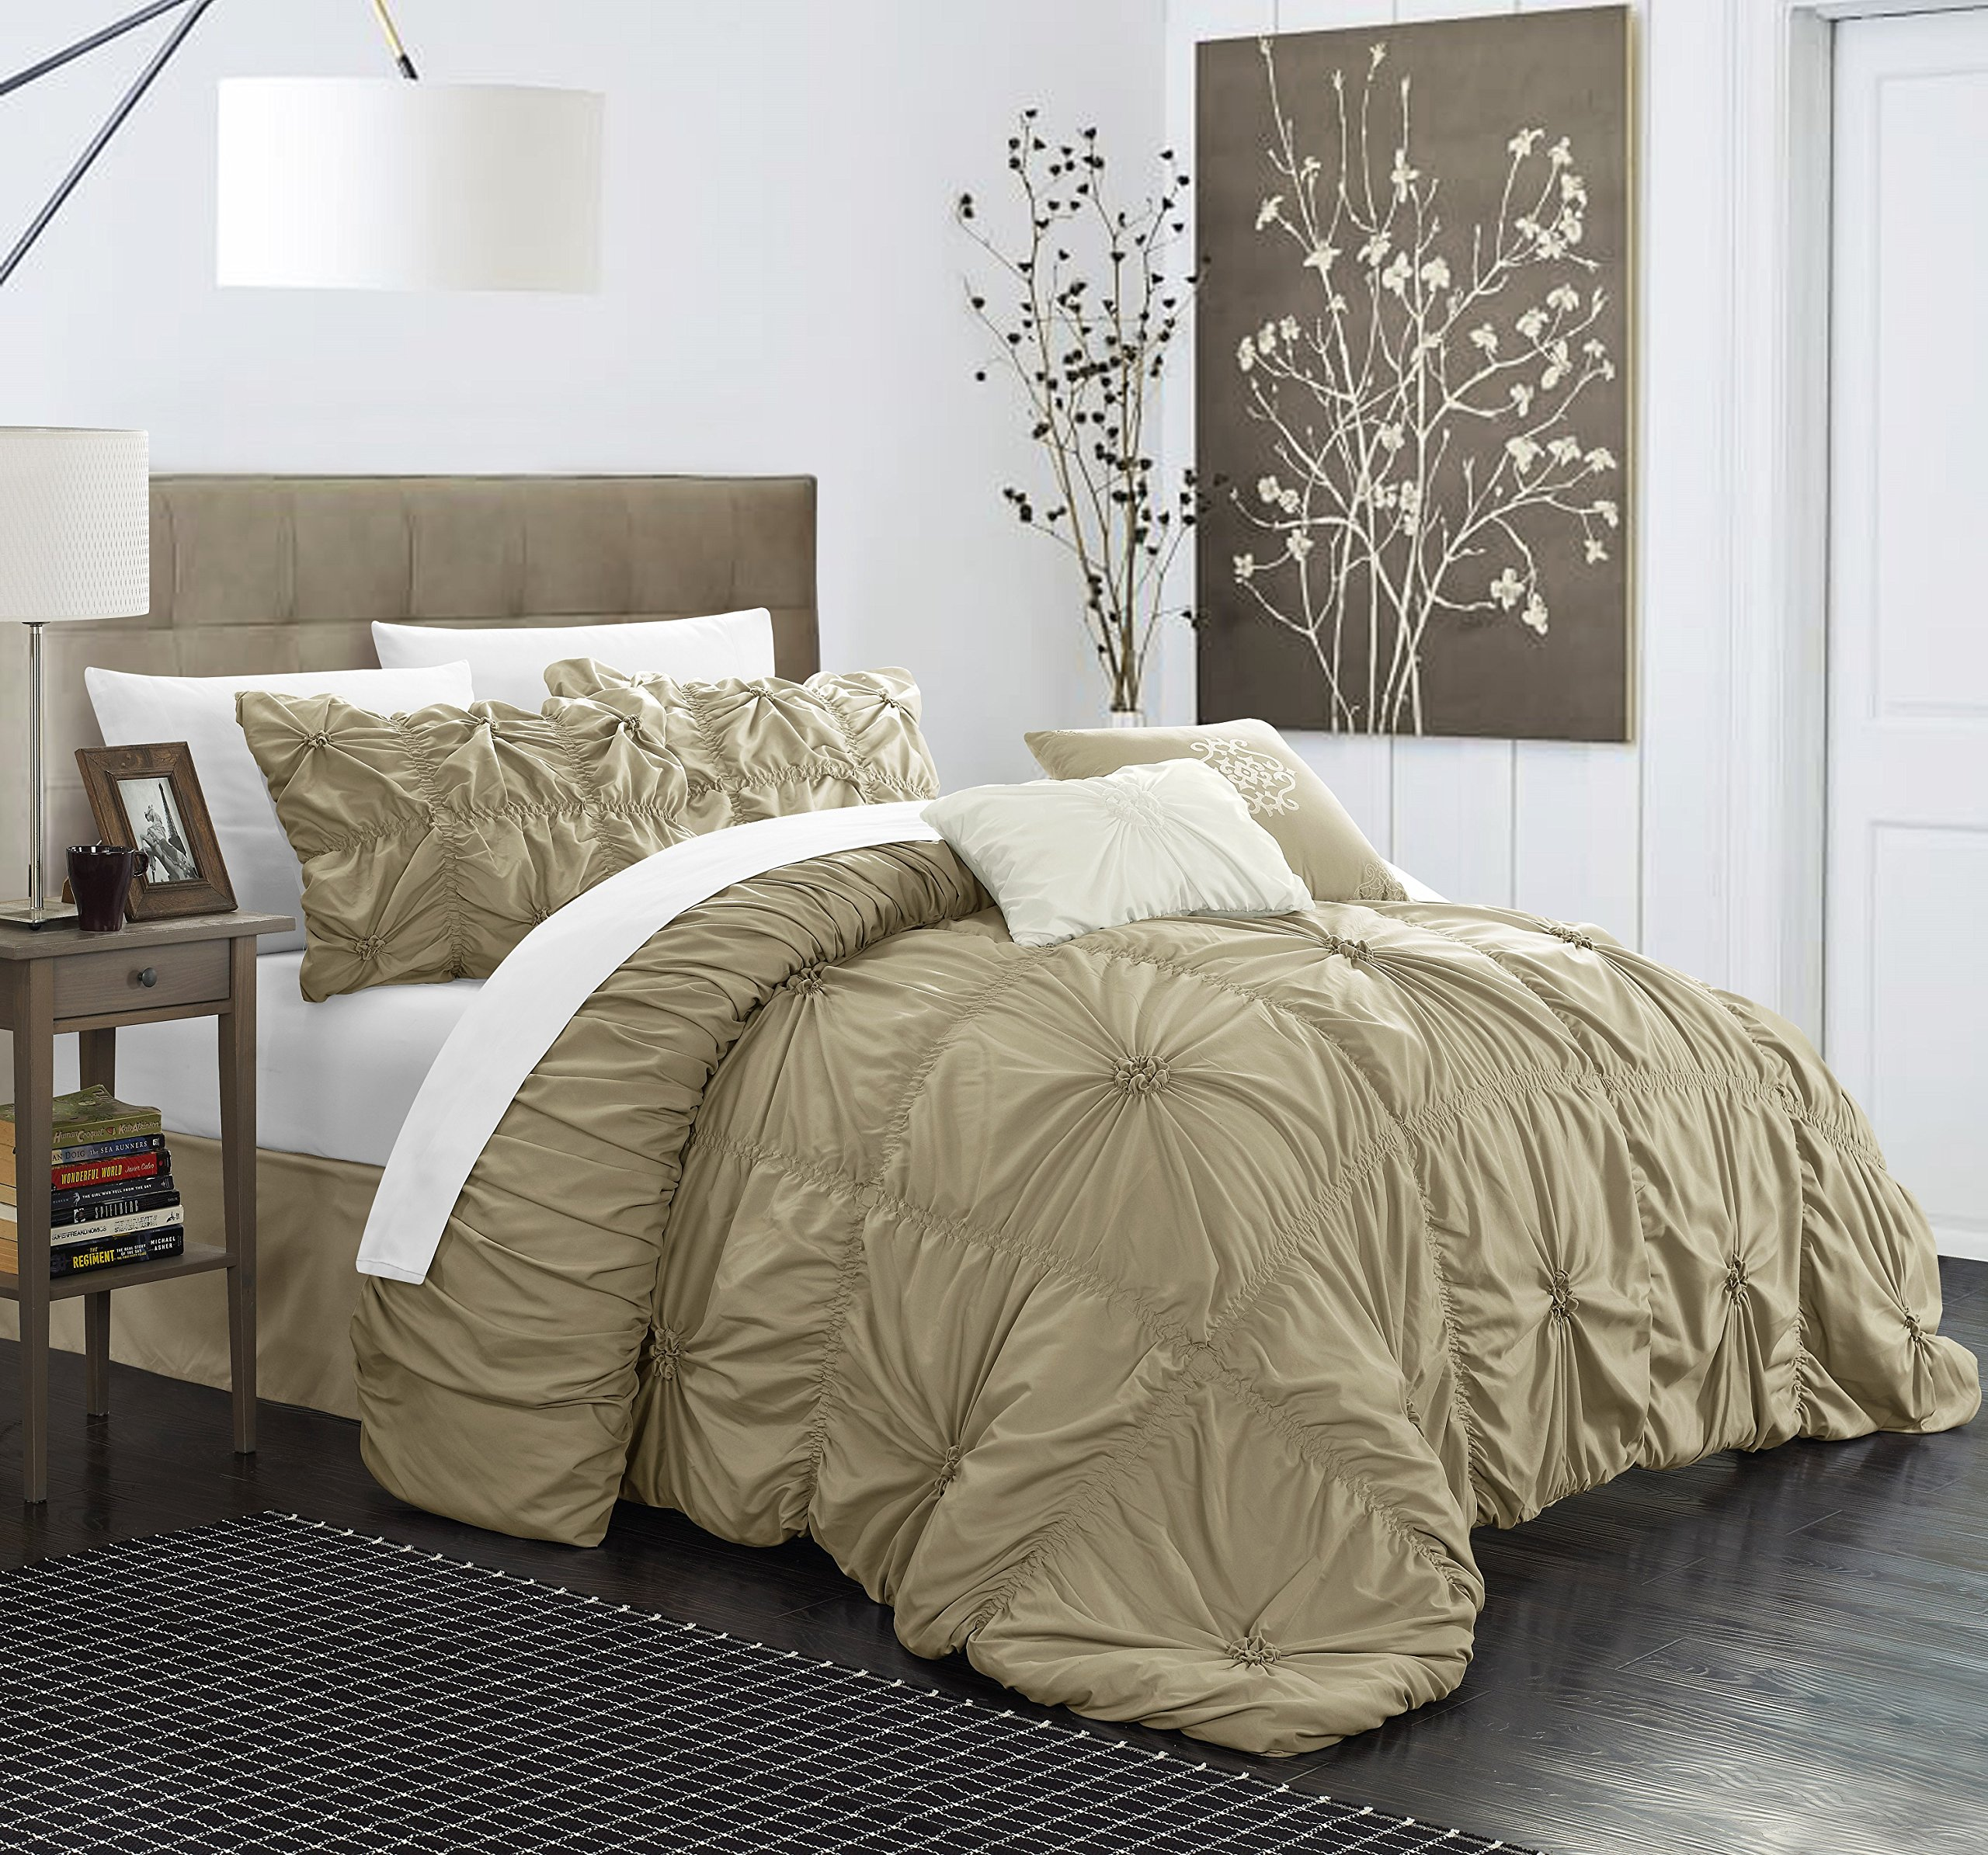 Chic Home Halpert 6 Piece Comforter Set Floral Pinch Pleated Ruffled Designer Embellished Bedding with Bed Skirt and Decorative Pillows Shams Included, King Taupe by Chic Home